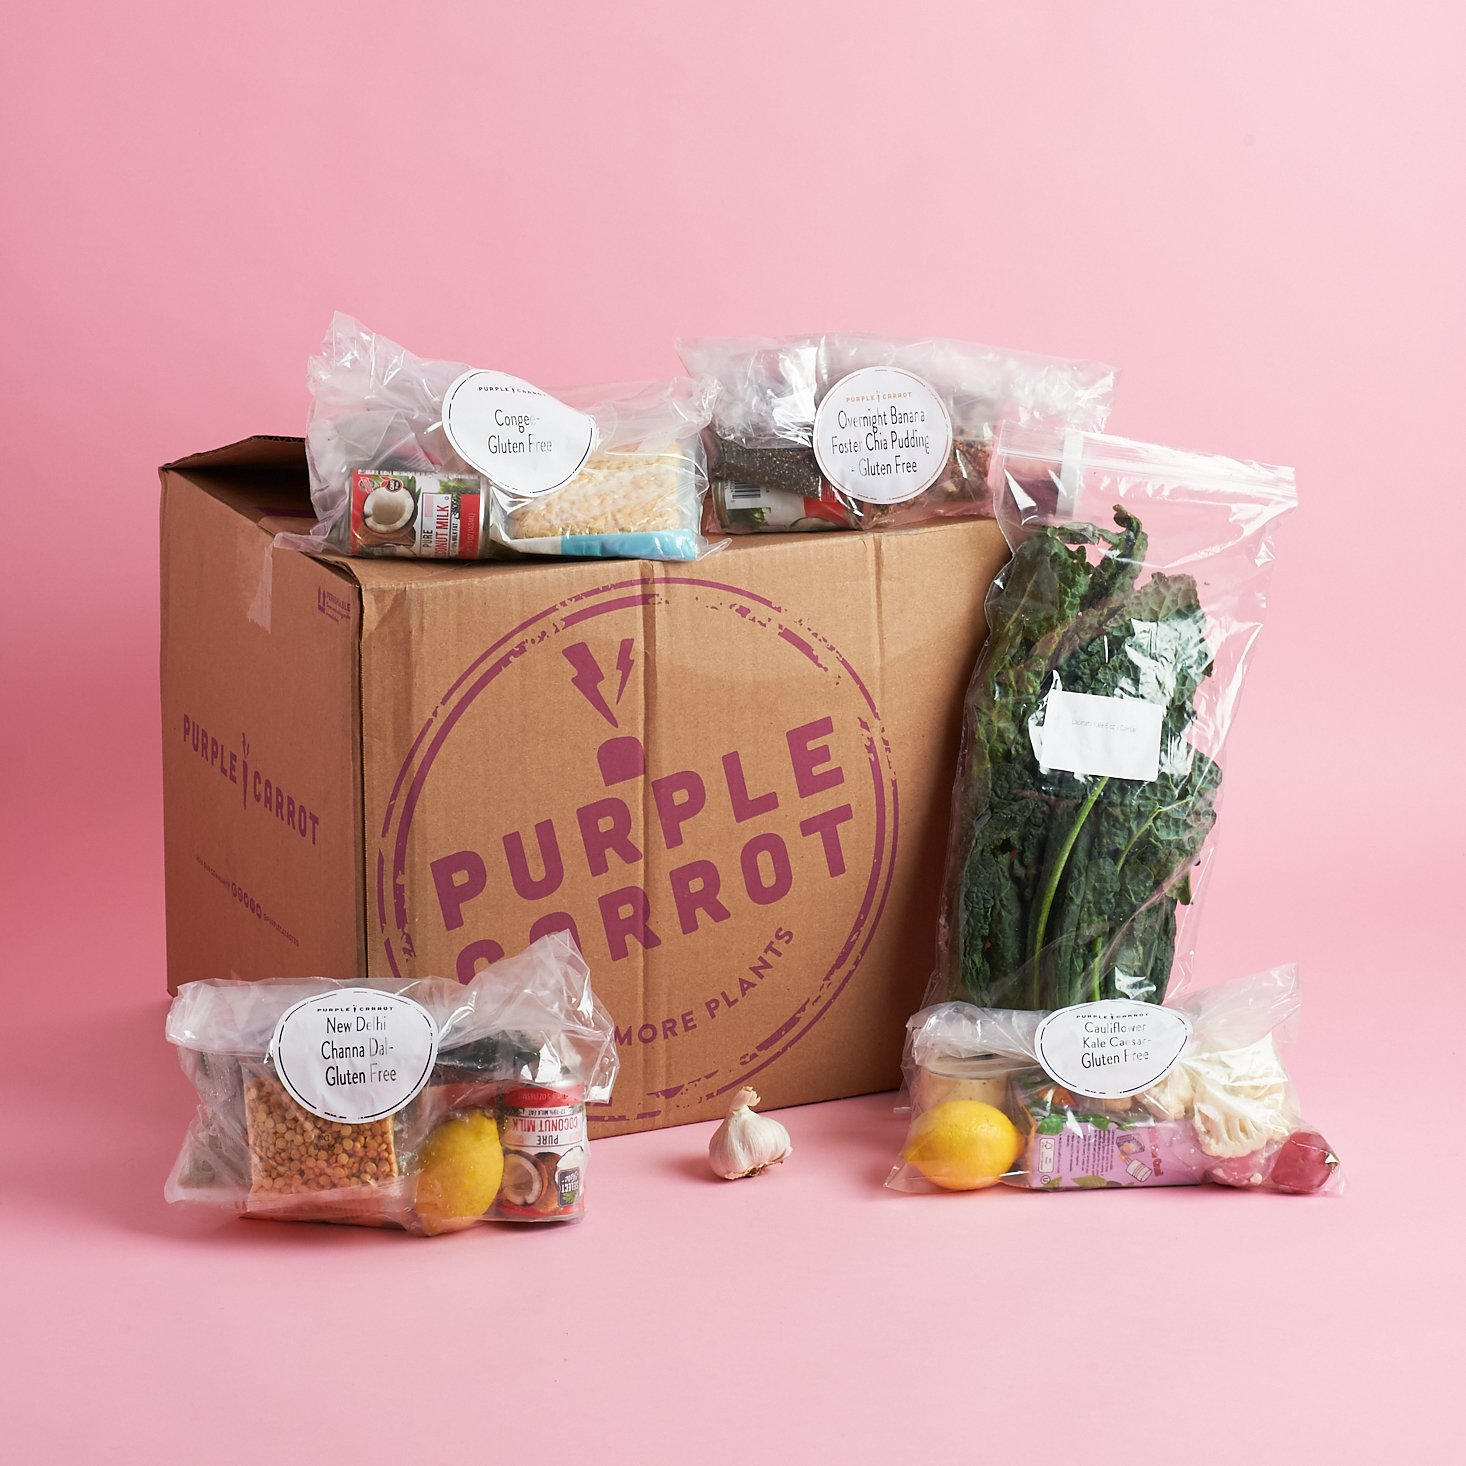 Purple Carrot Coupon Code – $30 Off Your First Box!